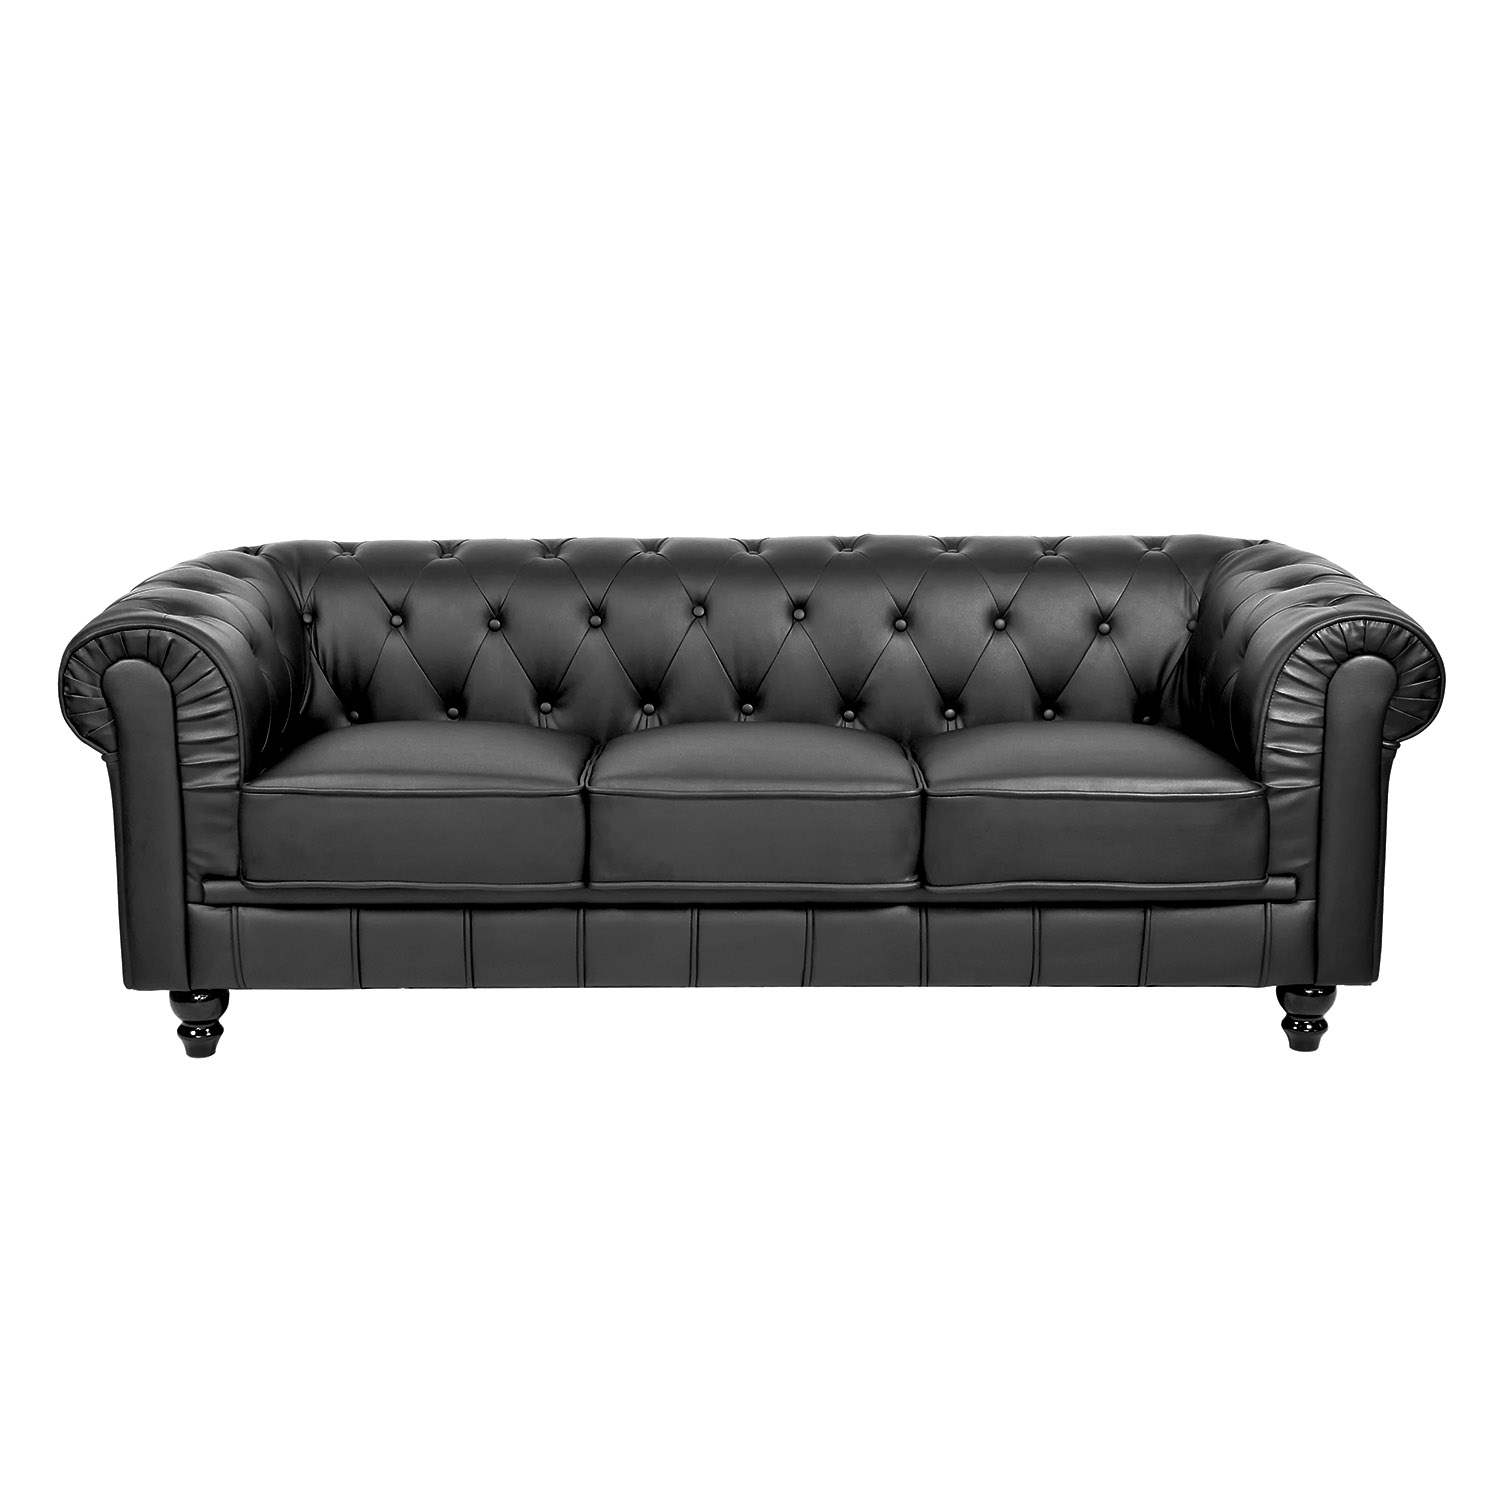 Deco in paris canape 3 places noir chesterfield can chester 3p pu noir - Canape chesterfield noir ...